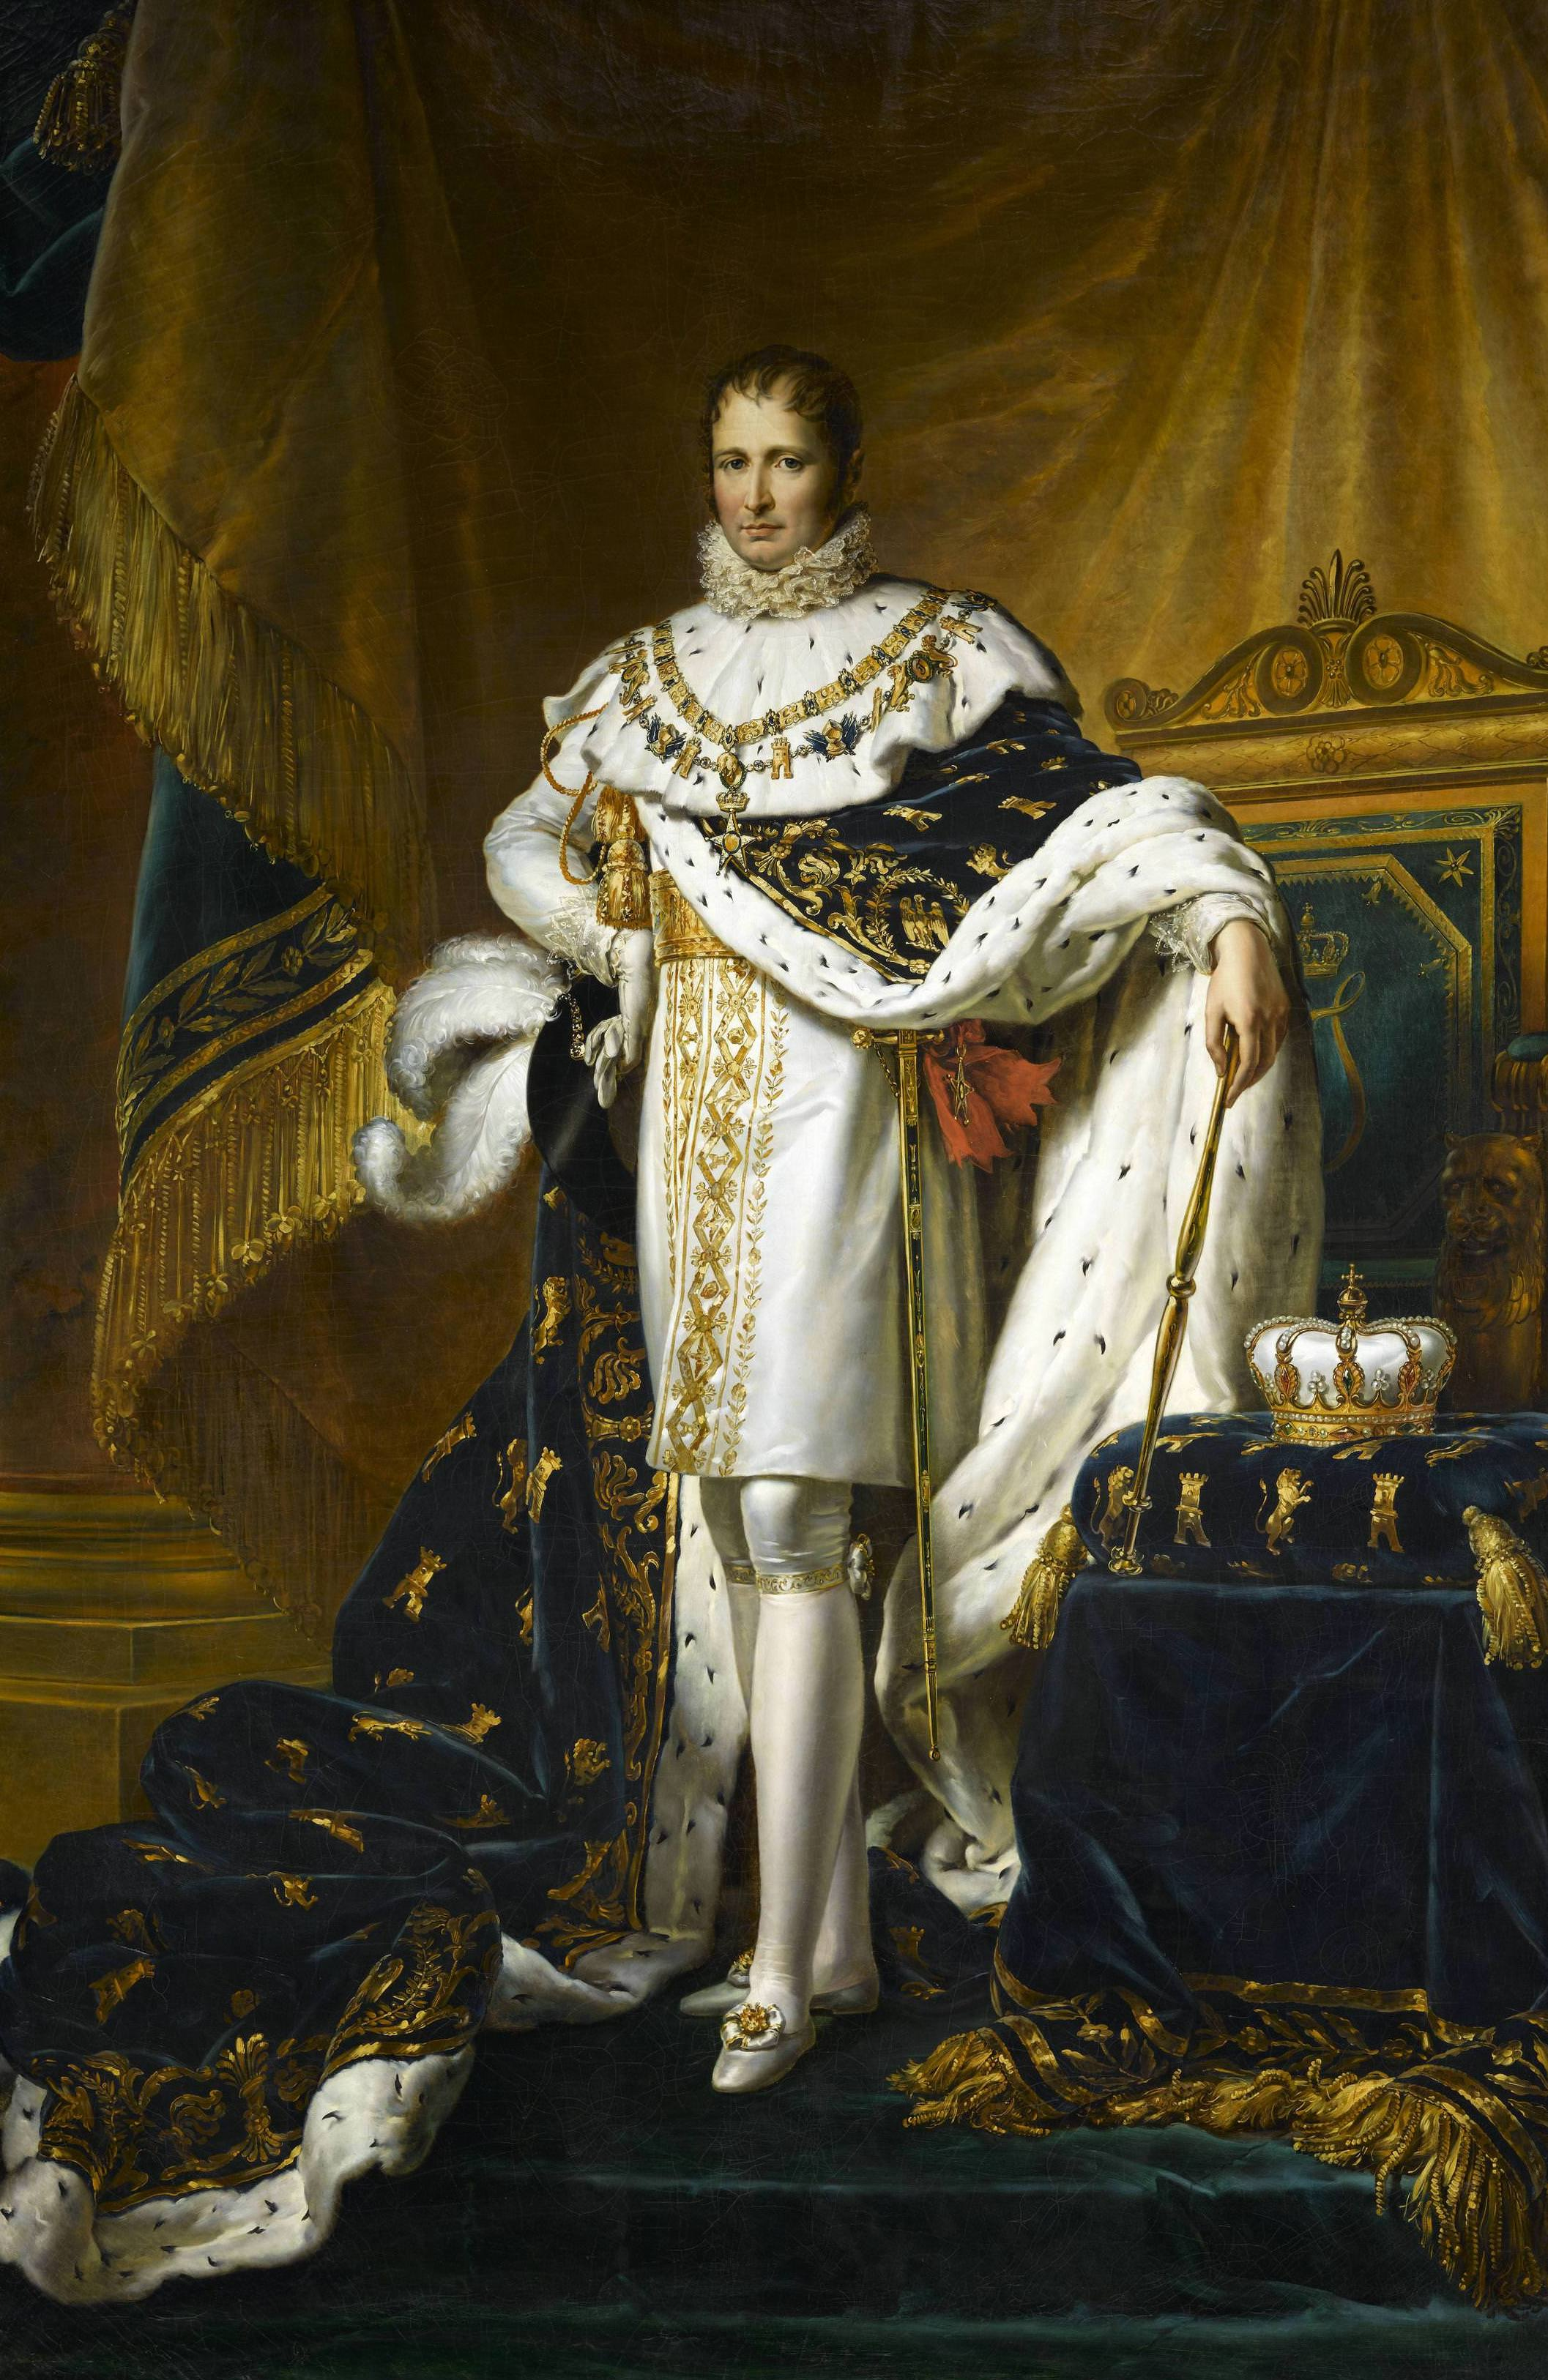 https://i2.wp.com/upload.wikimedia.org/wikipedia/commons/1/14/Joseph-Bonaparte.jpg